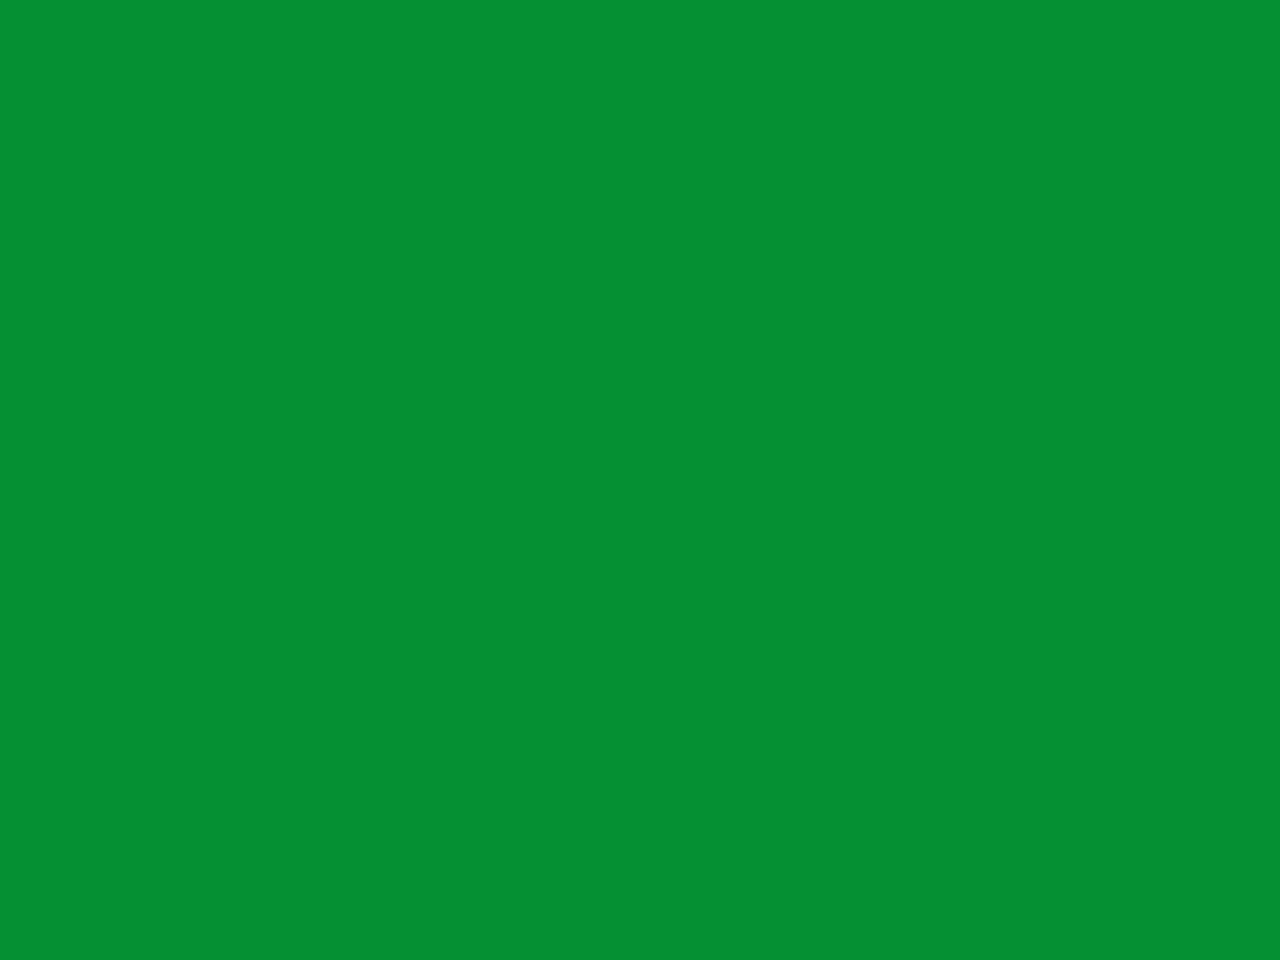 1280x960 North Texas Green Solid Color Background